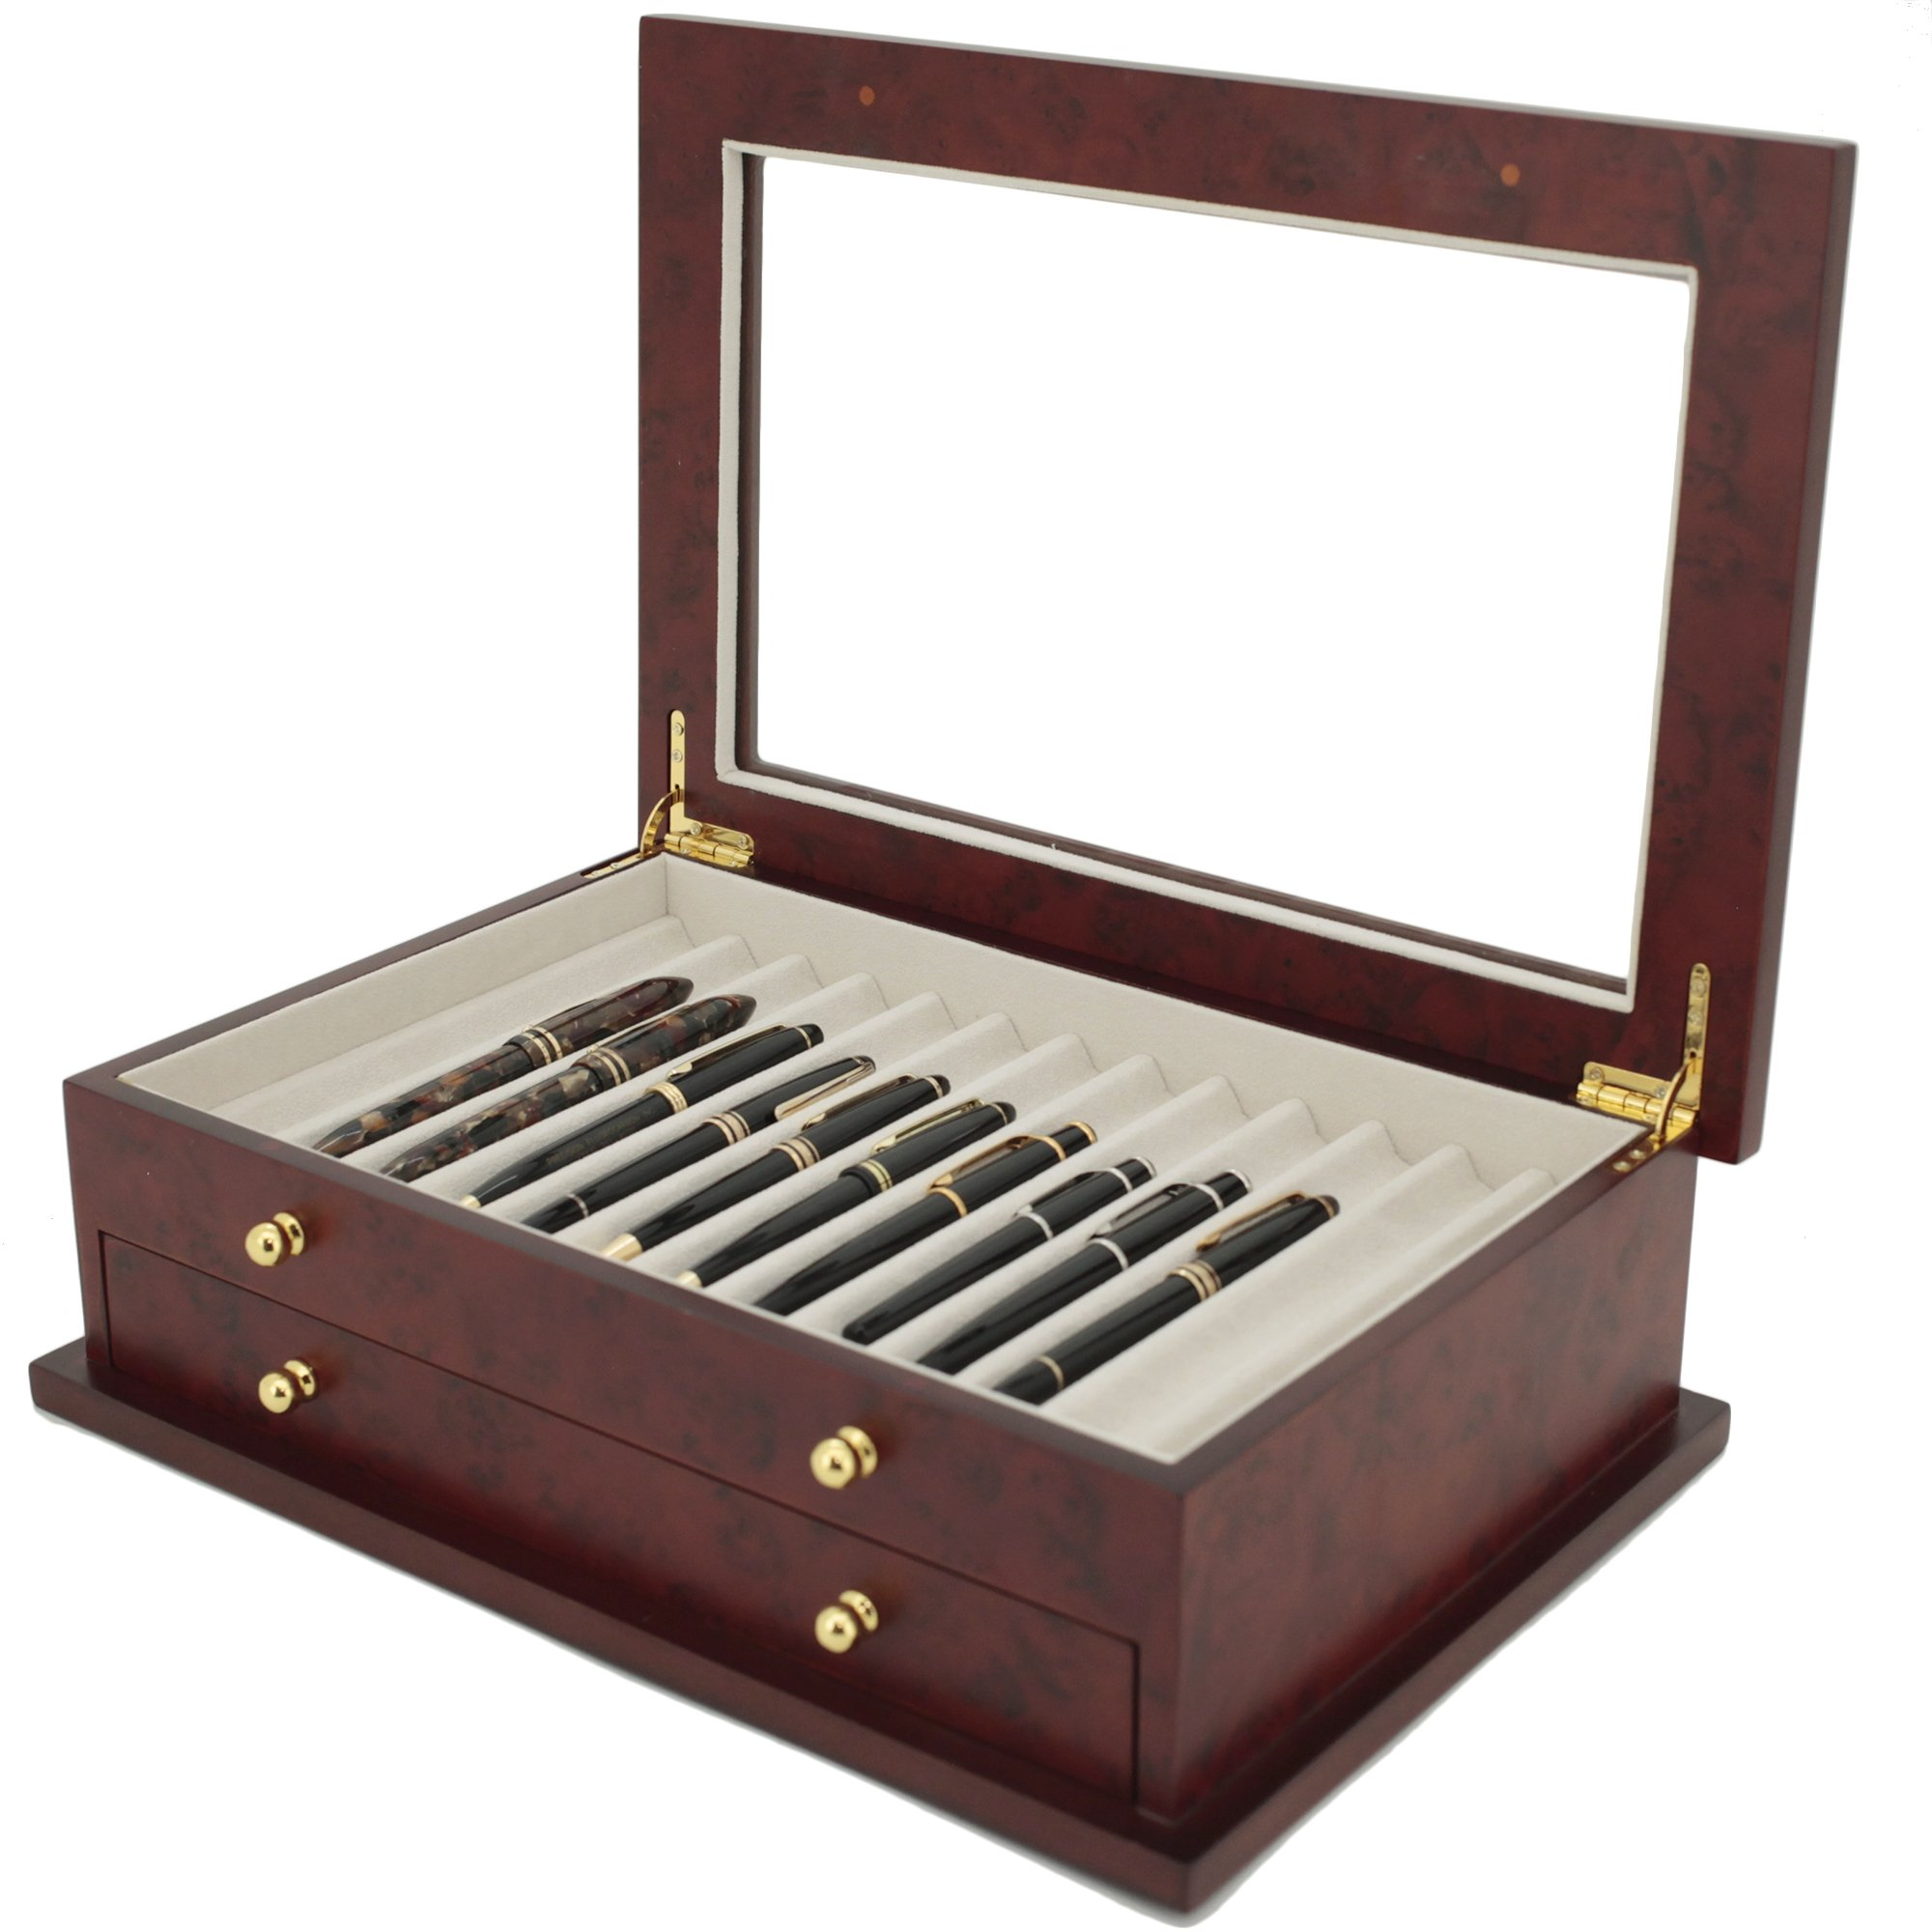 Pen Box 26 Fountain Pens Writing Instruments Wood Constructed Glass Display Case (Burlwood) by Tech Swiss (Image #3)